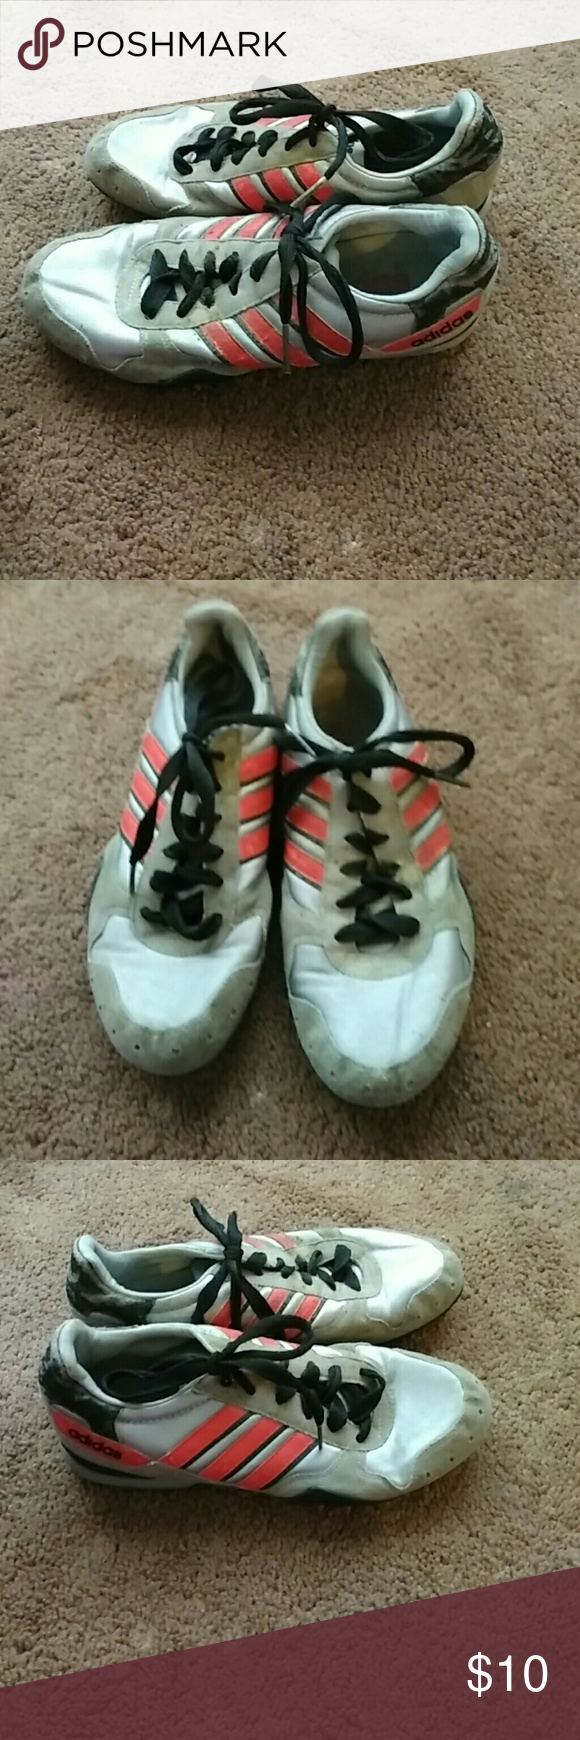 Preloved Adidas Running shoes Grey,black,red Adidas Shoes Sneakers